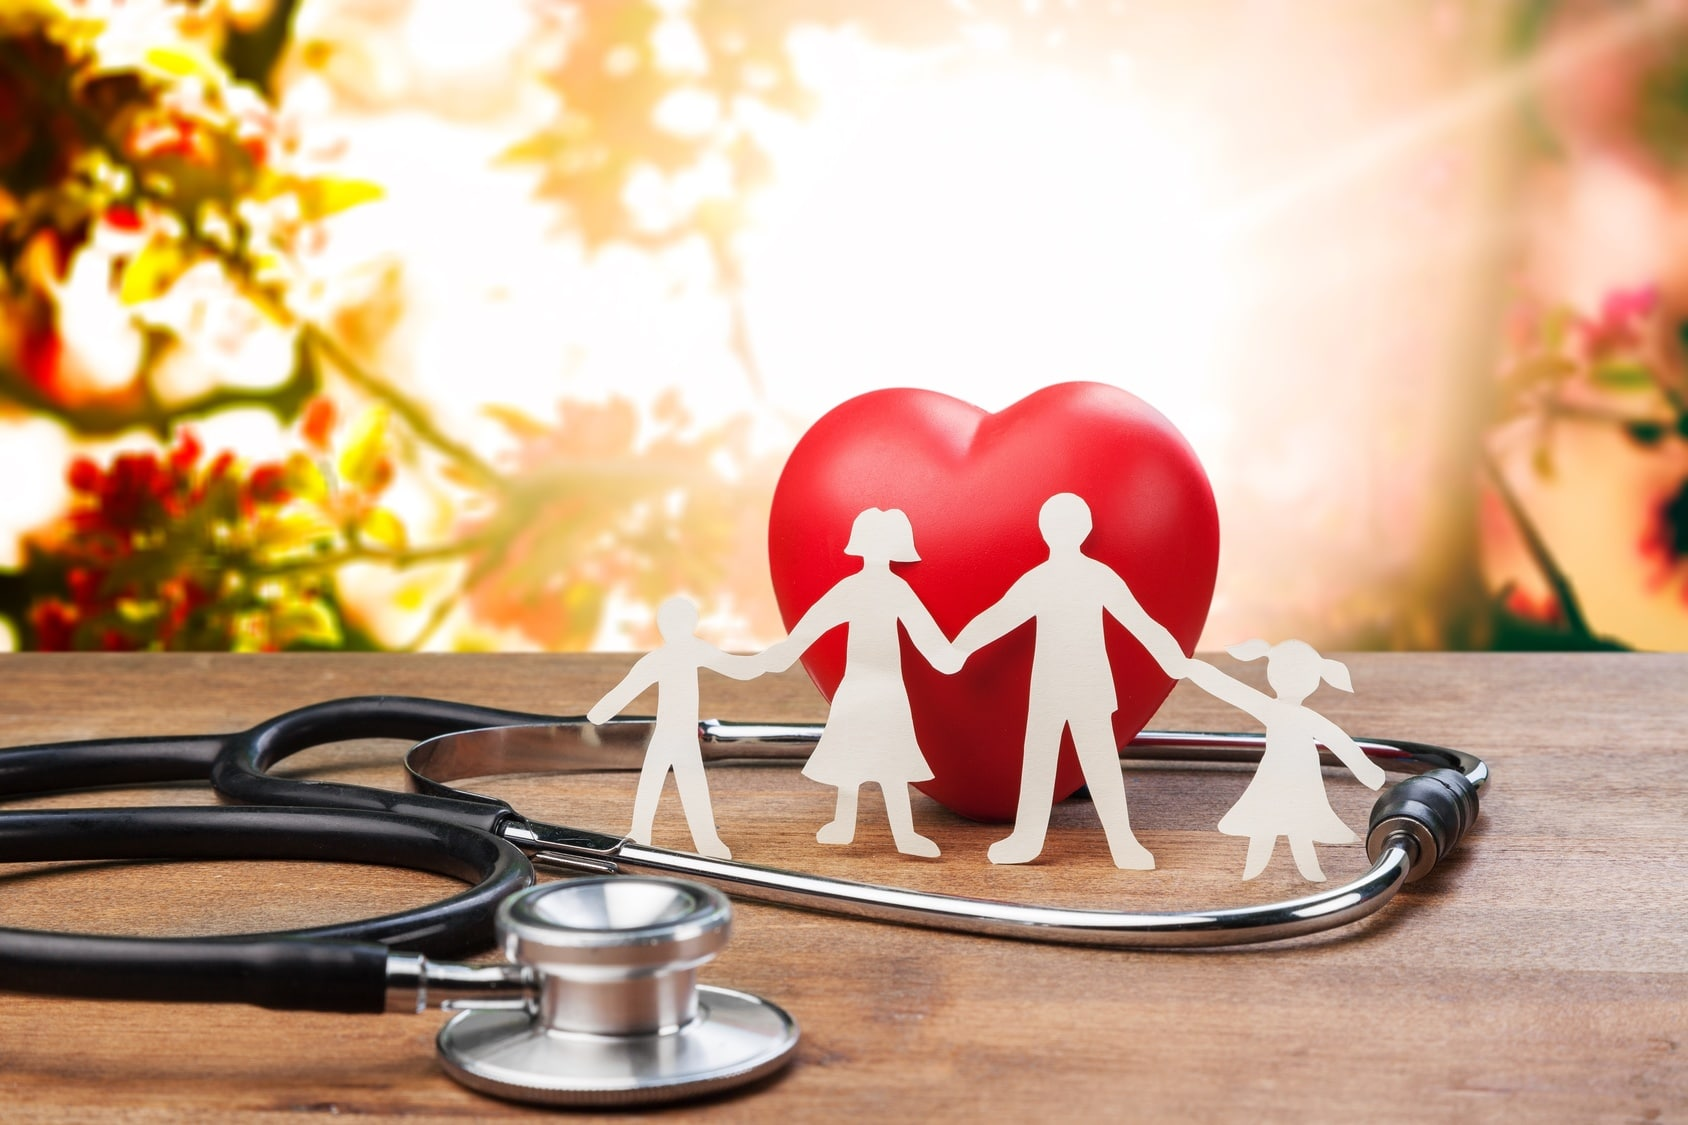 Malta Healthcare – Public Or Private Health Insurance?